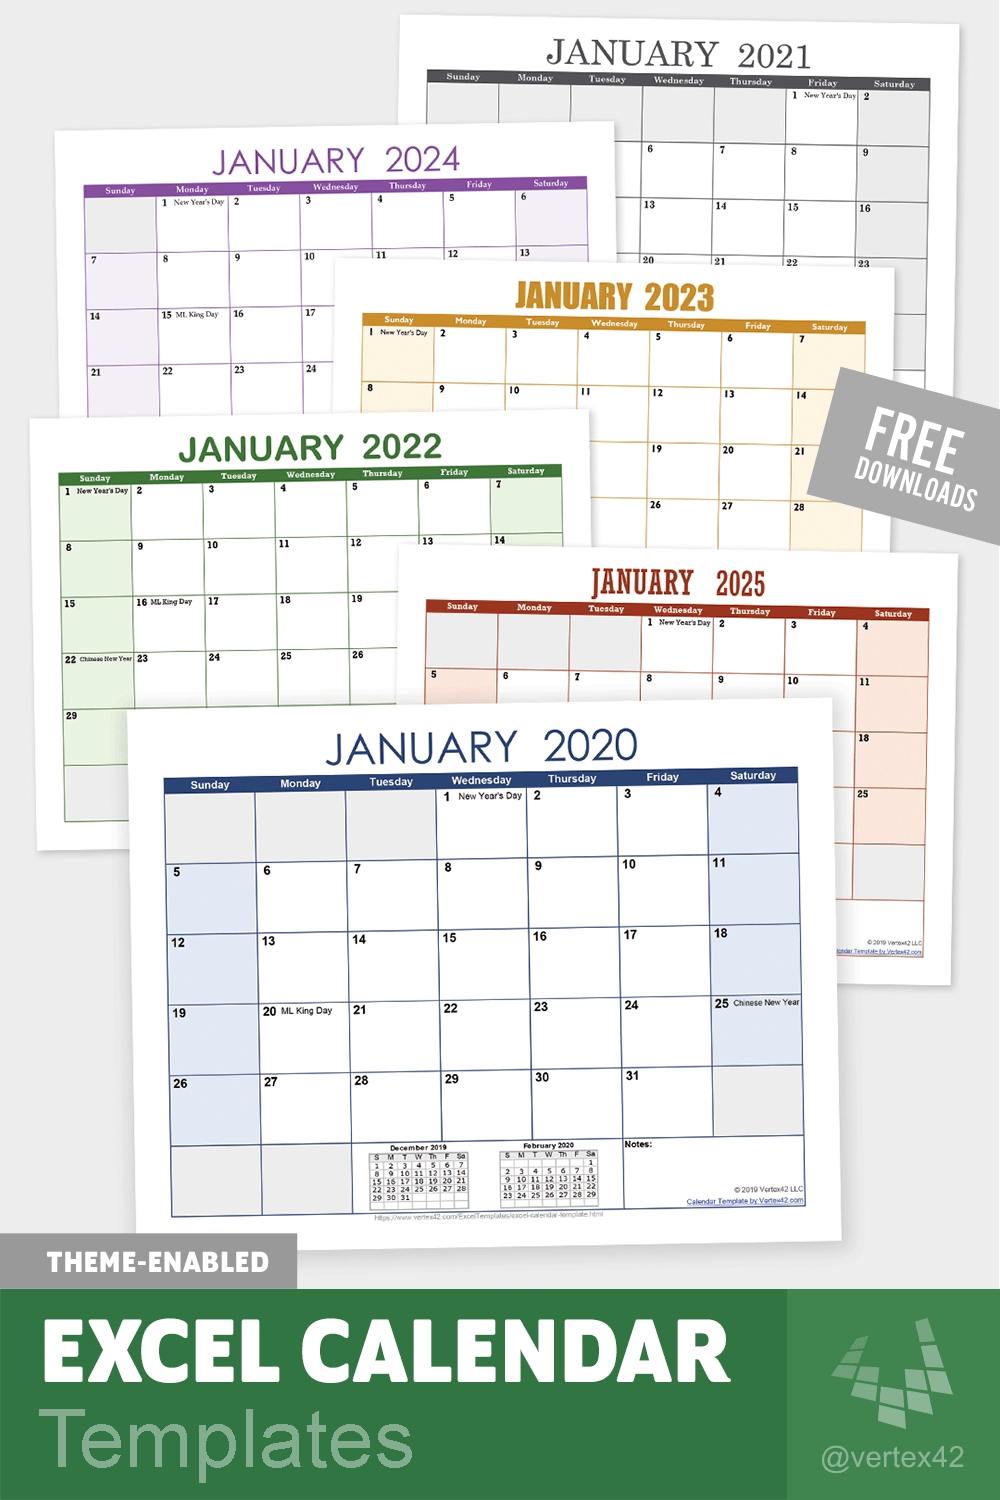 Excel Calendar Templates   Excel Calendar Template, Excel